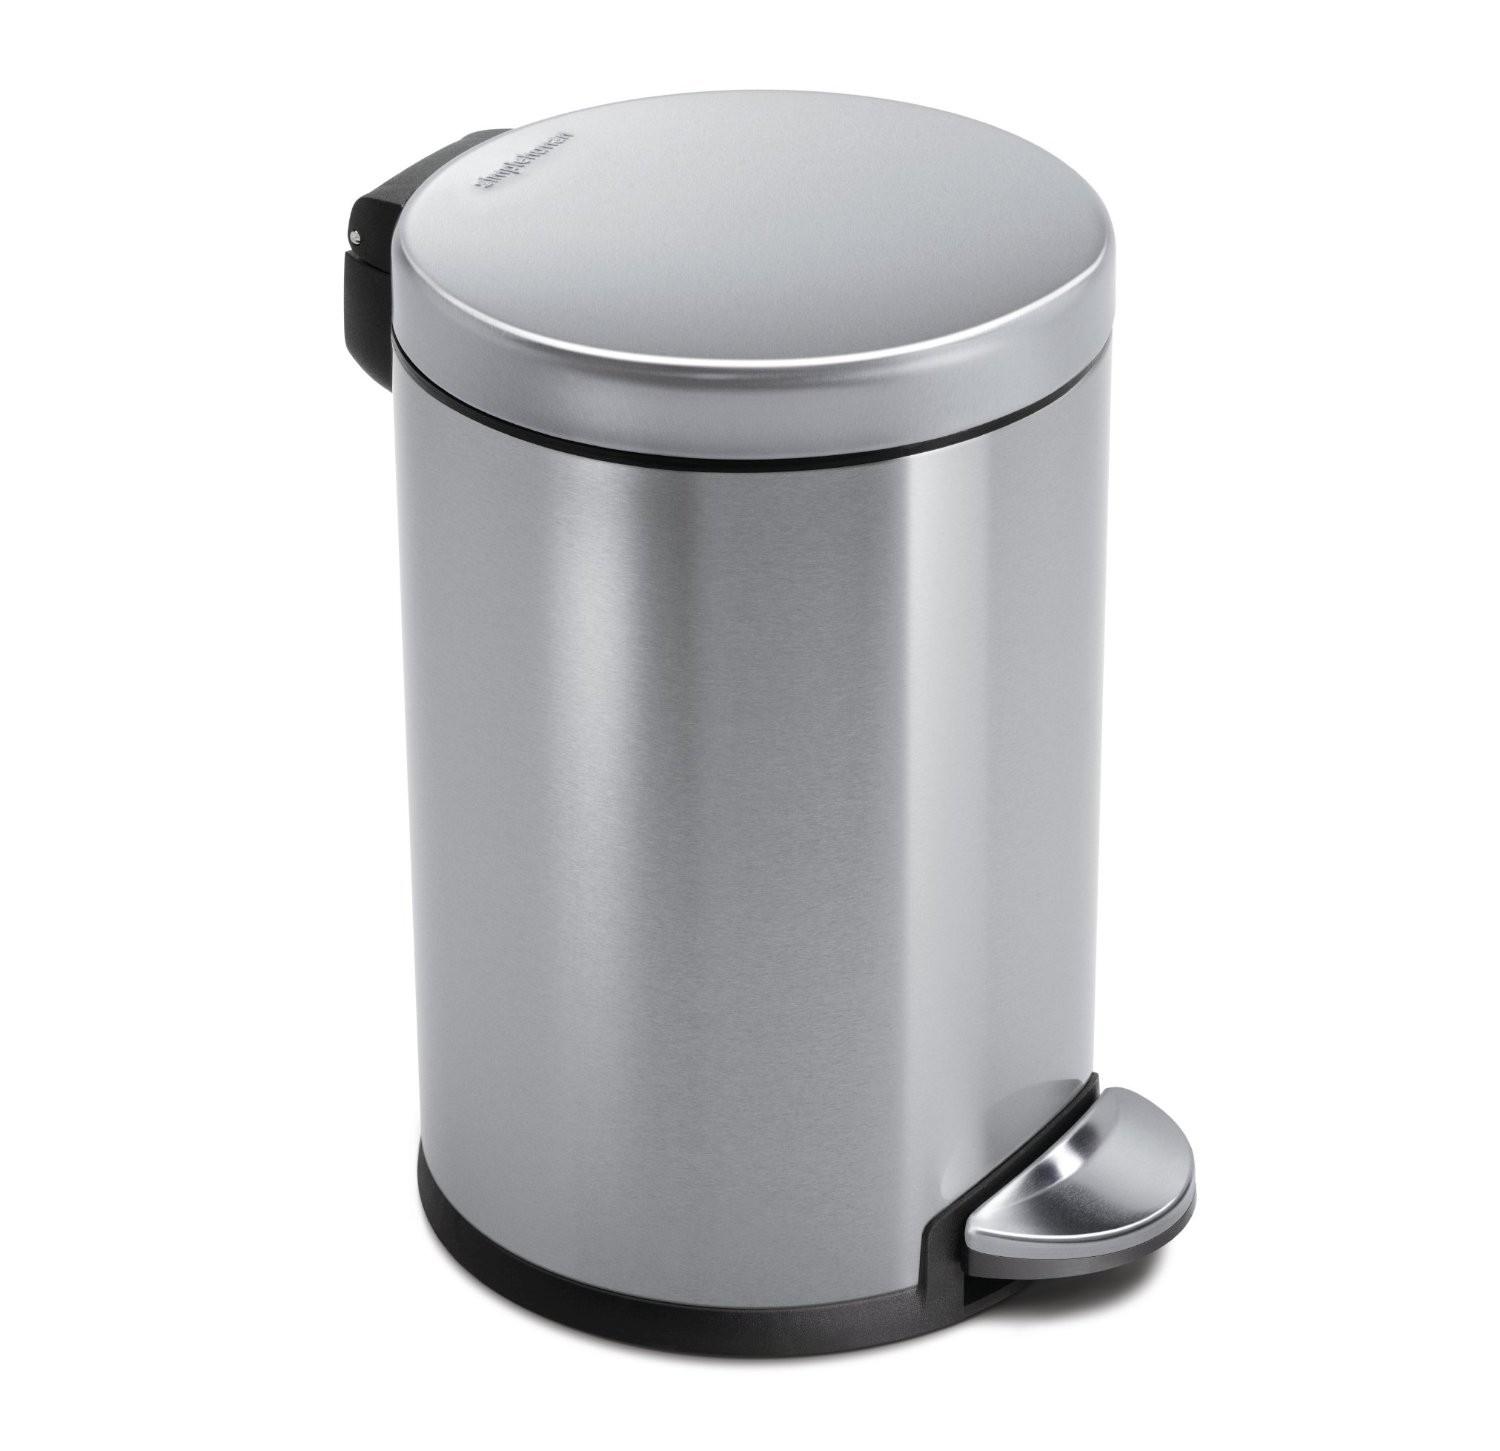 Bathroom Trash Can Best Of Best Bathroom Trash Can Reviews Of at topproducts Image